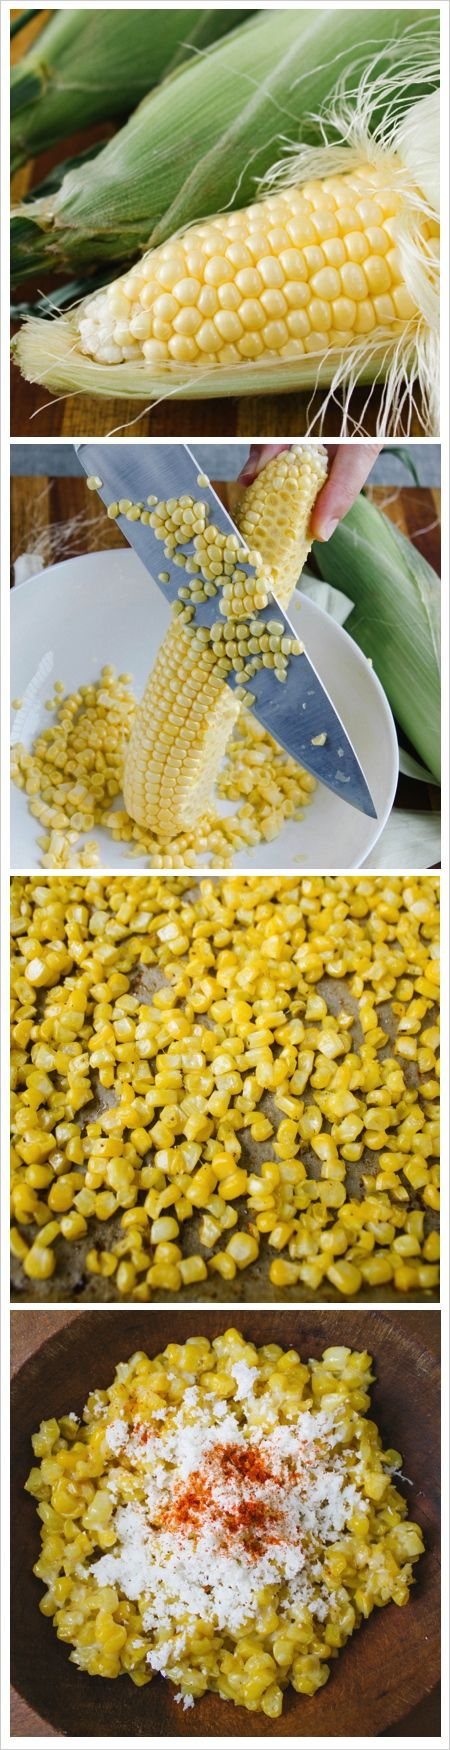 Roasted Corn With Cheese and Lime (Roasting the corn off the cob in the oven!)